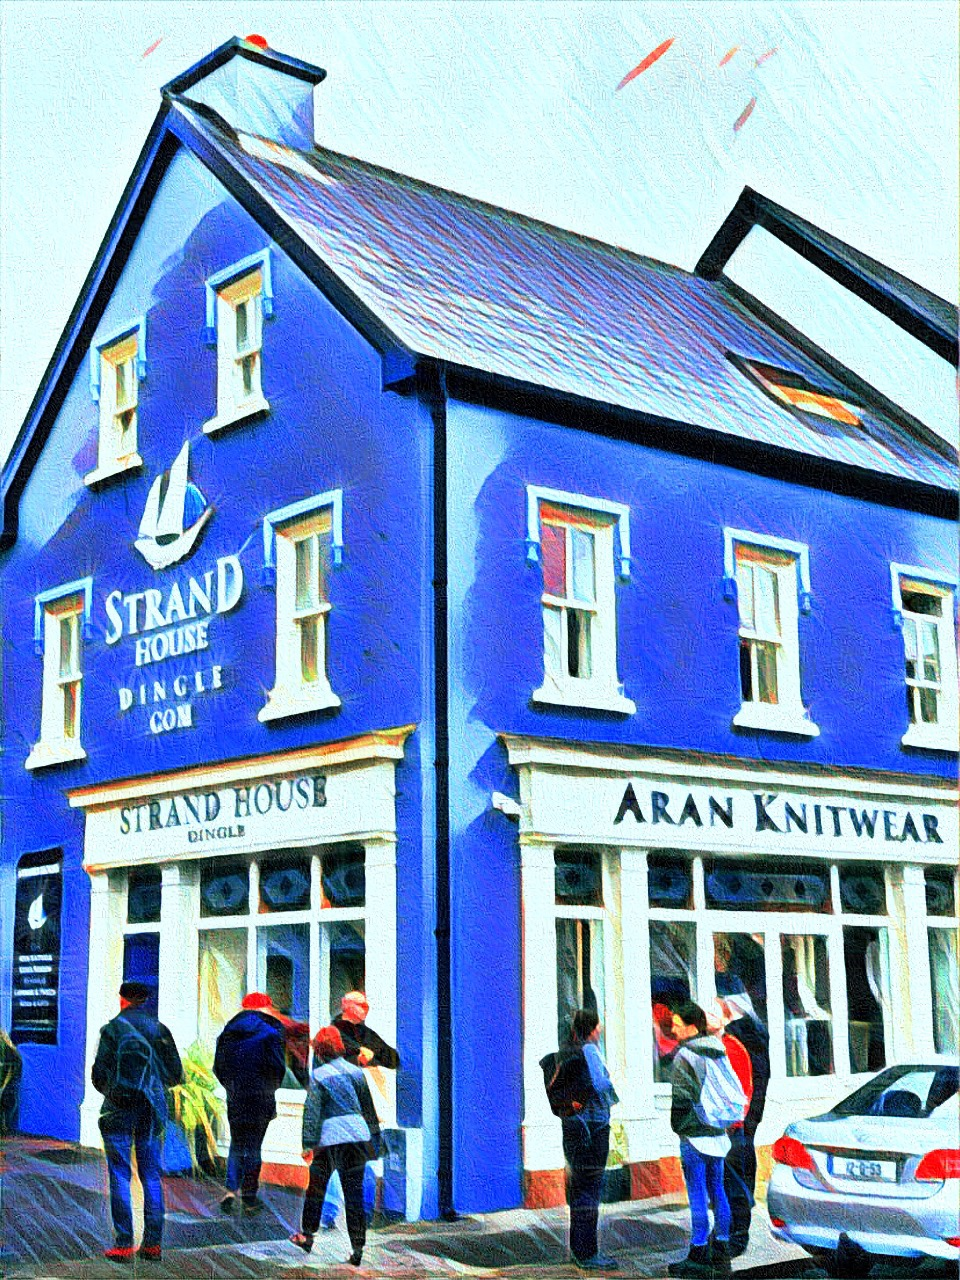 June 31, 2019 - Strand House, Dingle Peninsula, County Kerry, Ireland [Prisma & iColorama]